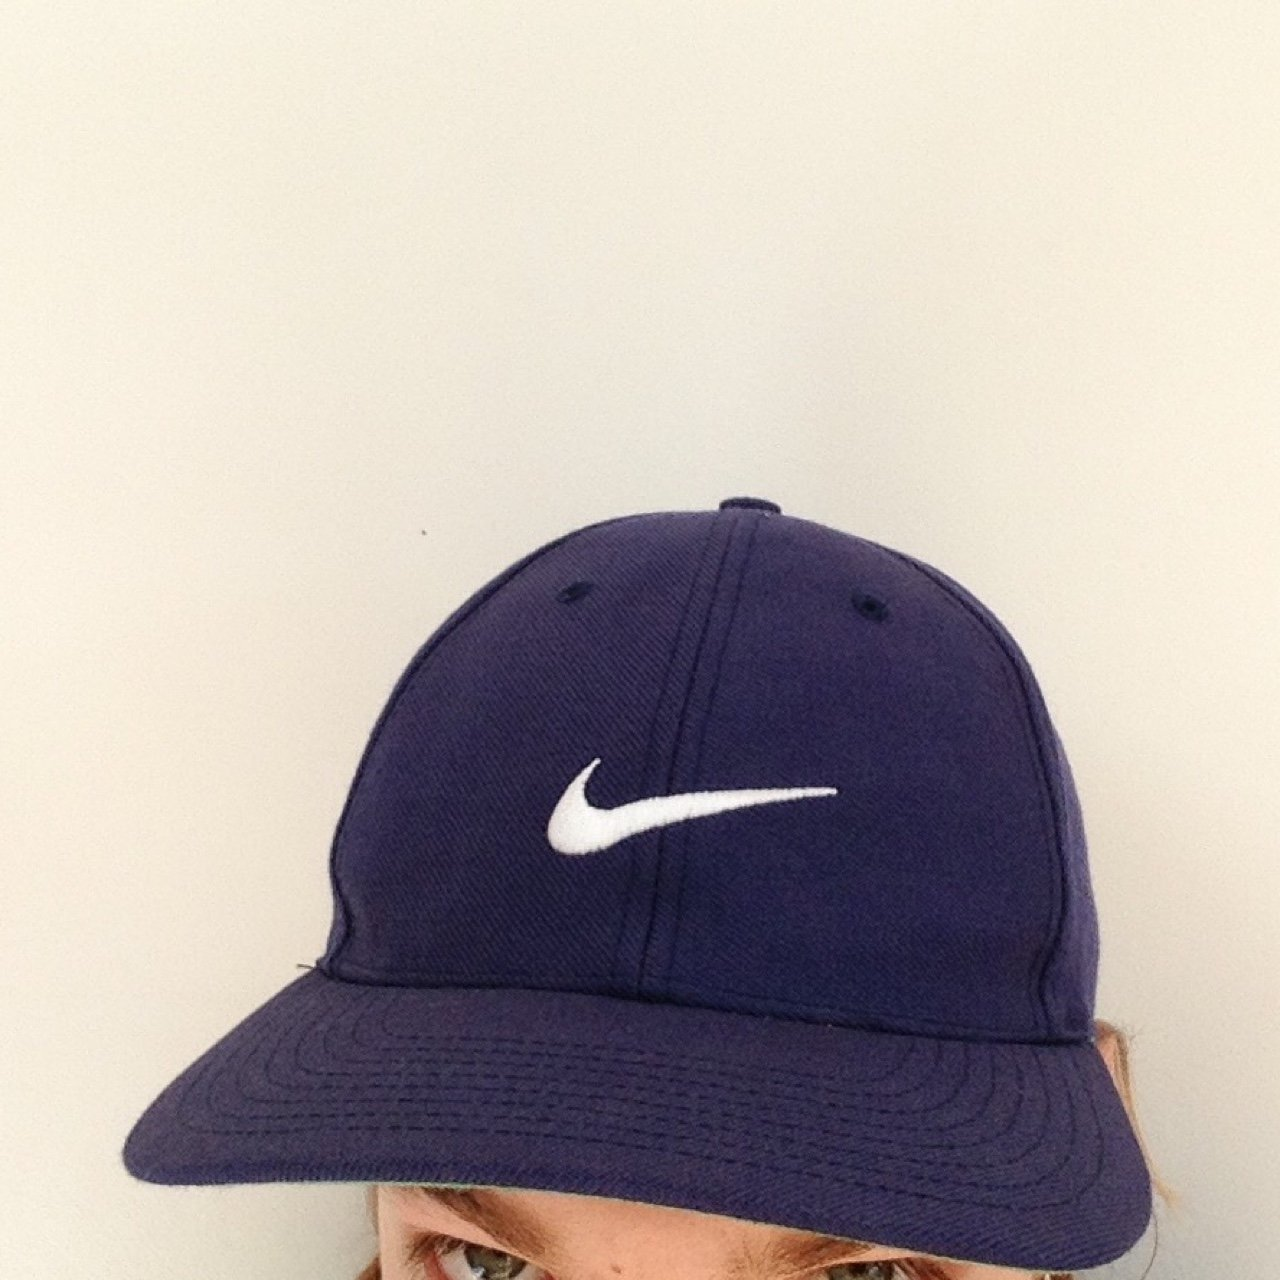 Nike sports cap. Size 7 1 2. Original Nike. Blue Navy  nike - Depop 06f11f13cd3